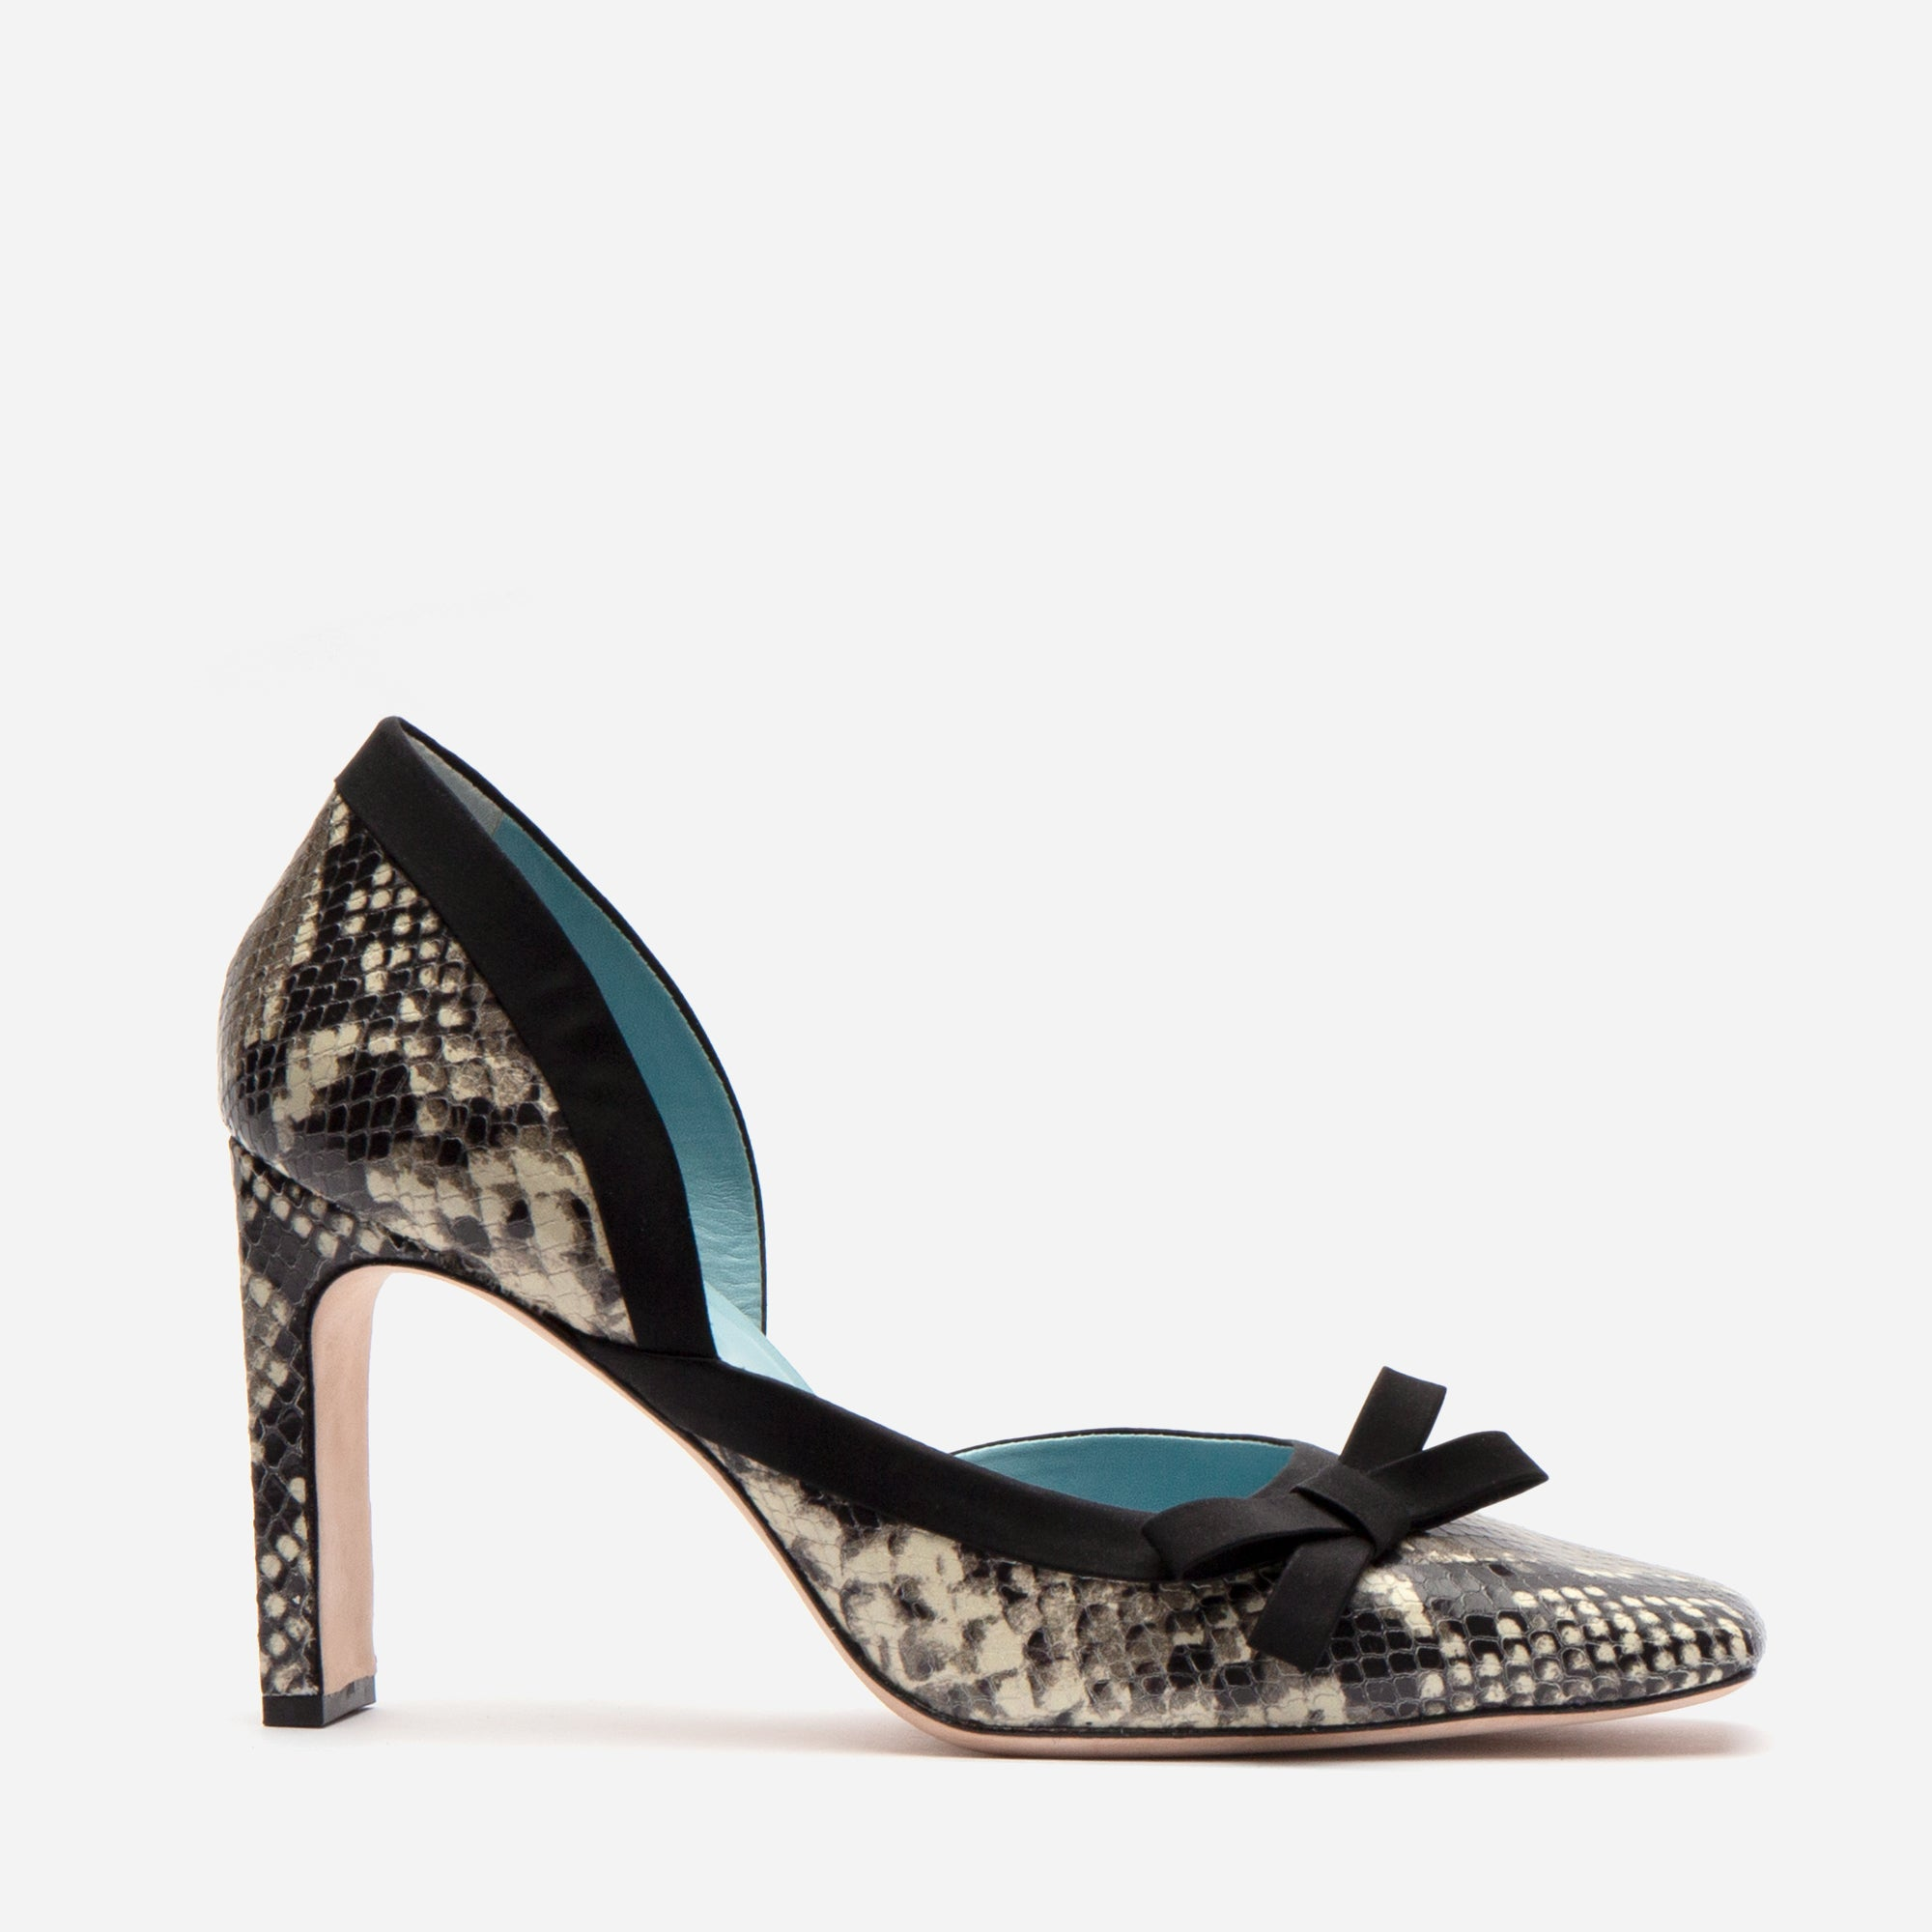 Sinclair Leather Heels Roccia Snake Black *FINAL SALE*